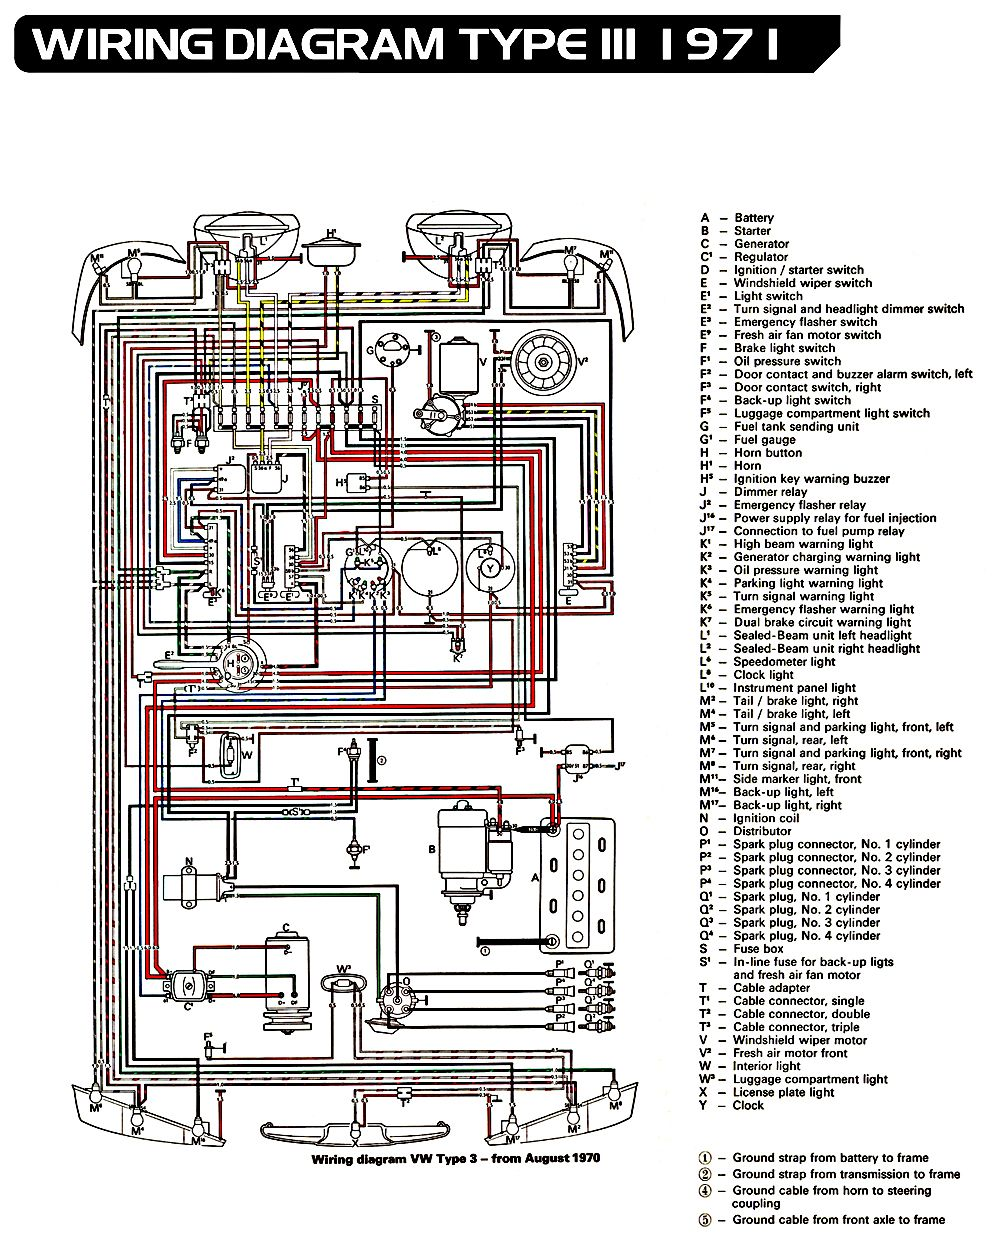 1971 volkswagen beetle wiring diagram 1971 volkswagen beetle engine wiring 1971 type 3 vw wiring diagram---so simple compared to a ... #2